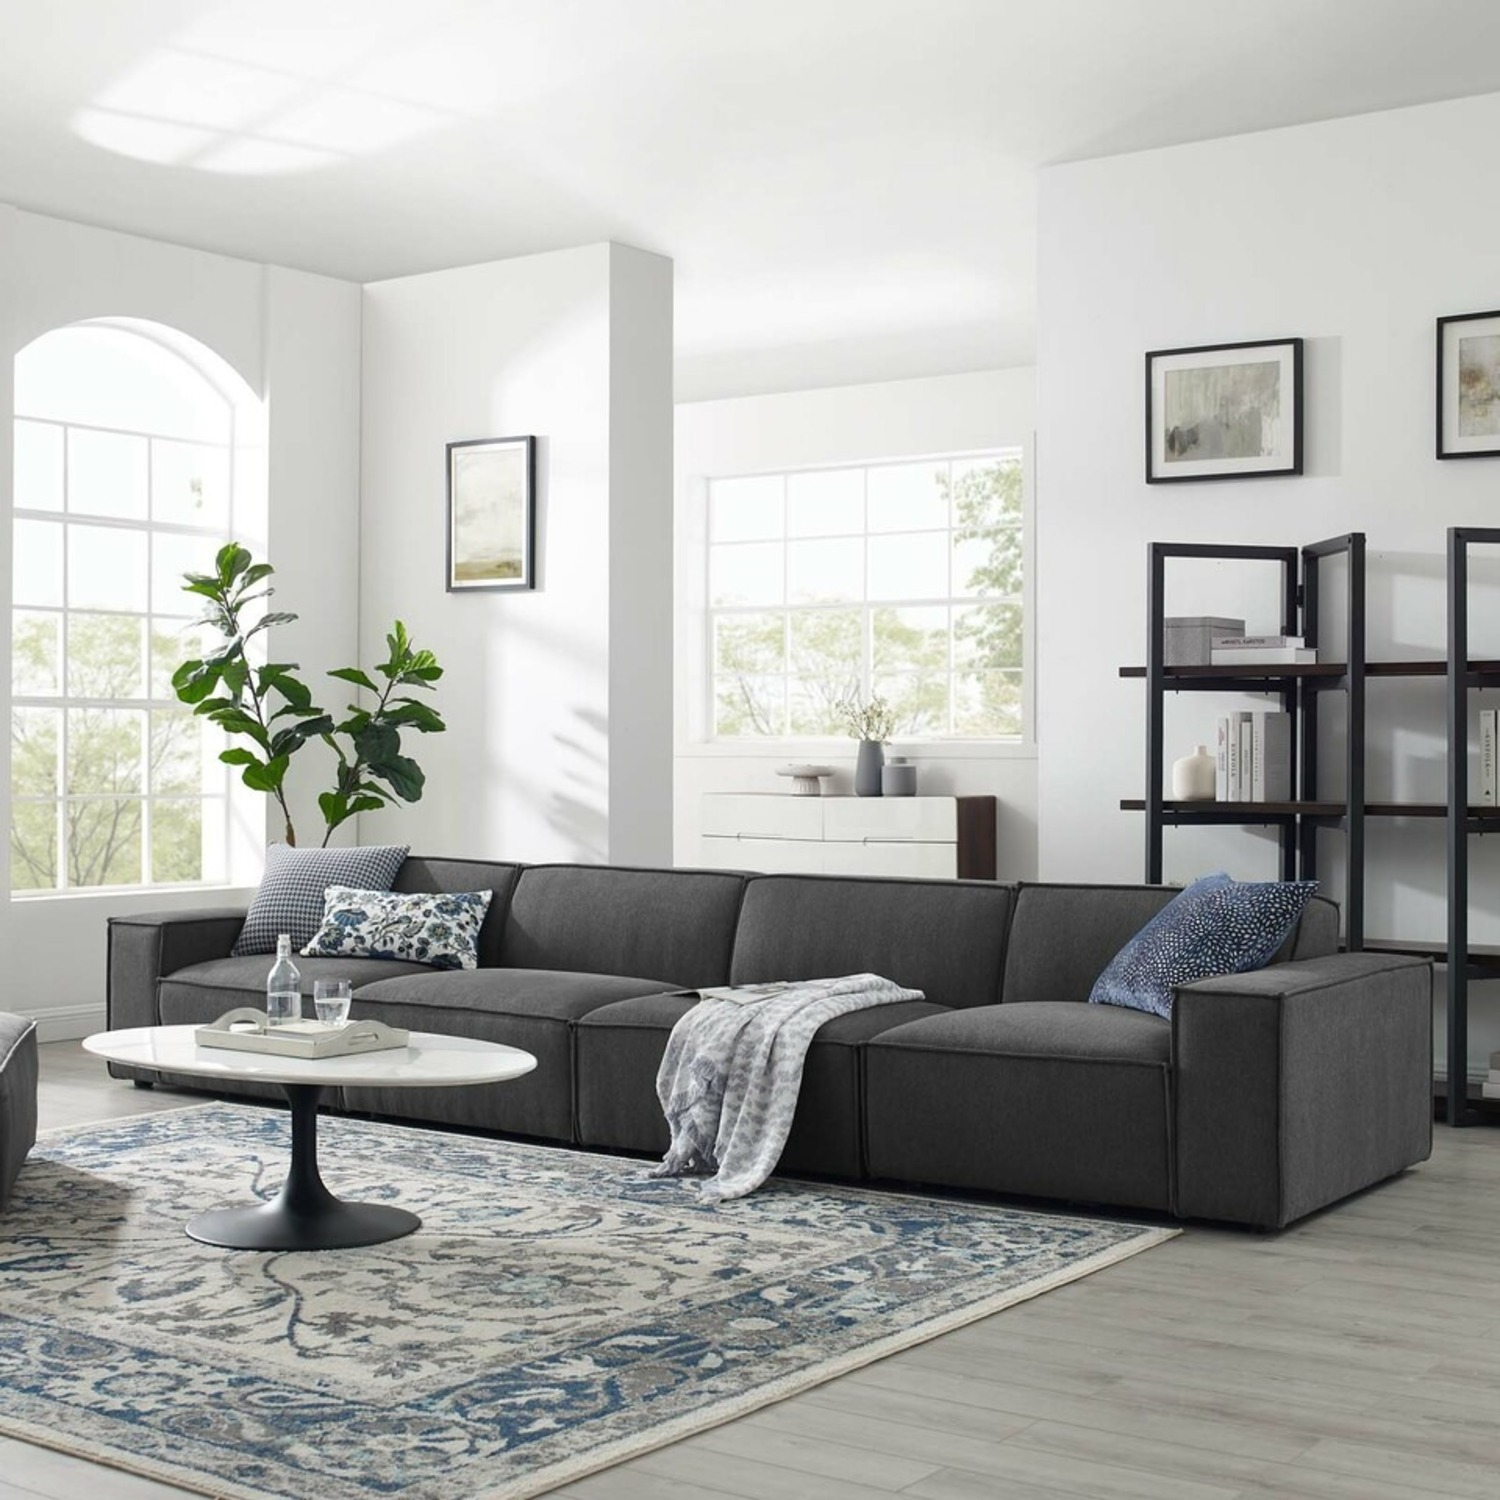 4-Piece Sectional Sofa In Charcoal Upholstery - image-10